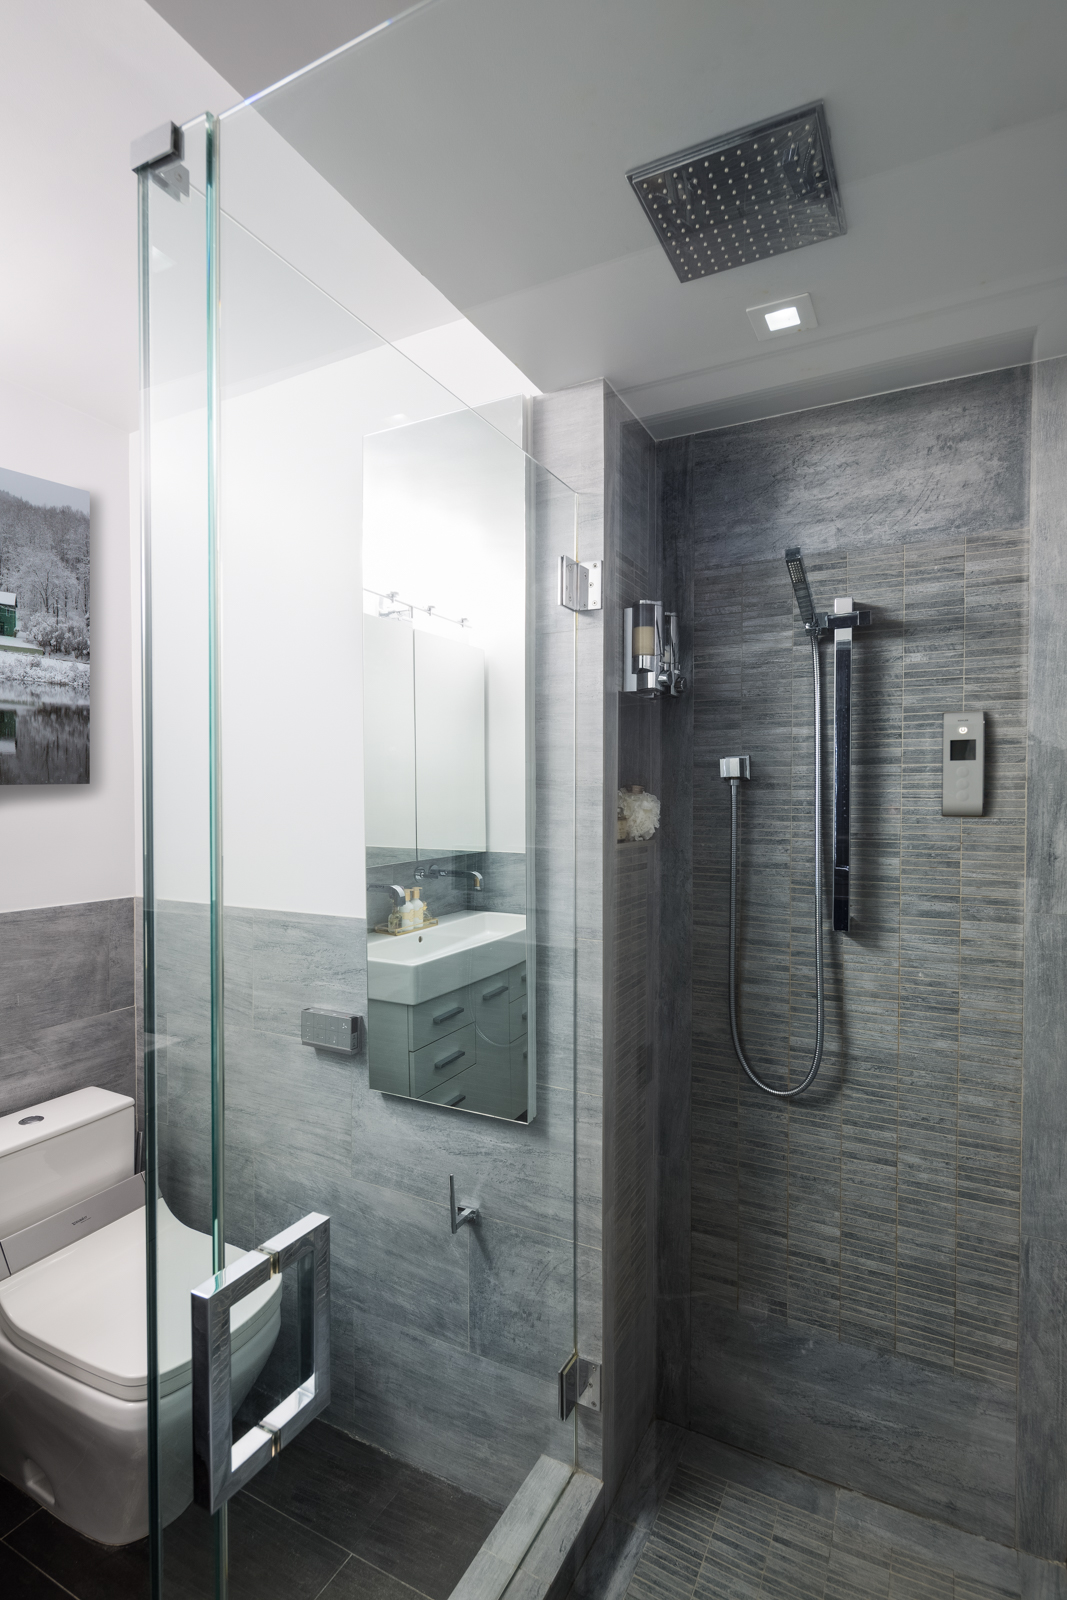 The standing shower has glass on 2 sides and feels open and airy. Polished chrome fixtures from Grohe and the large overhead rainshower creates a great bath experience. The built in niche tucked away on the side is a necessity with all the products!